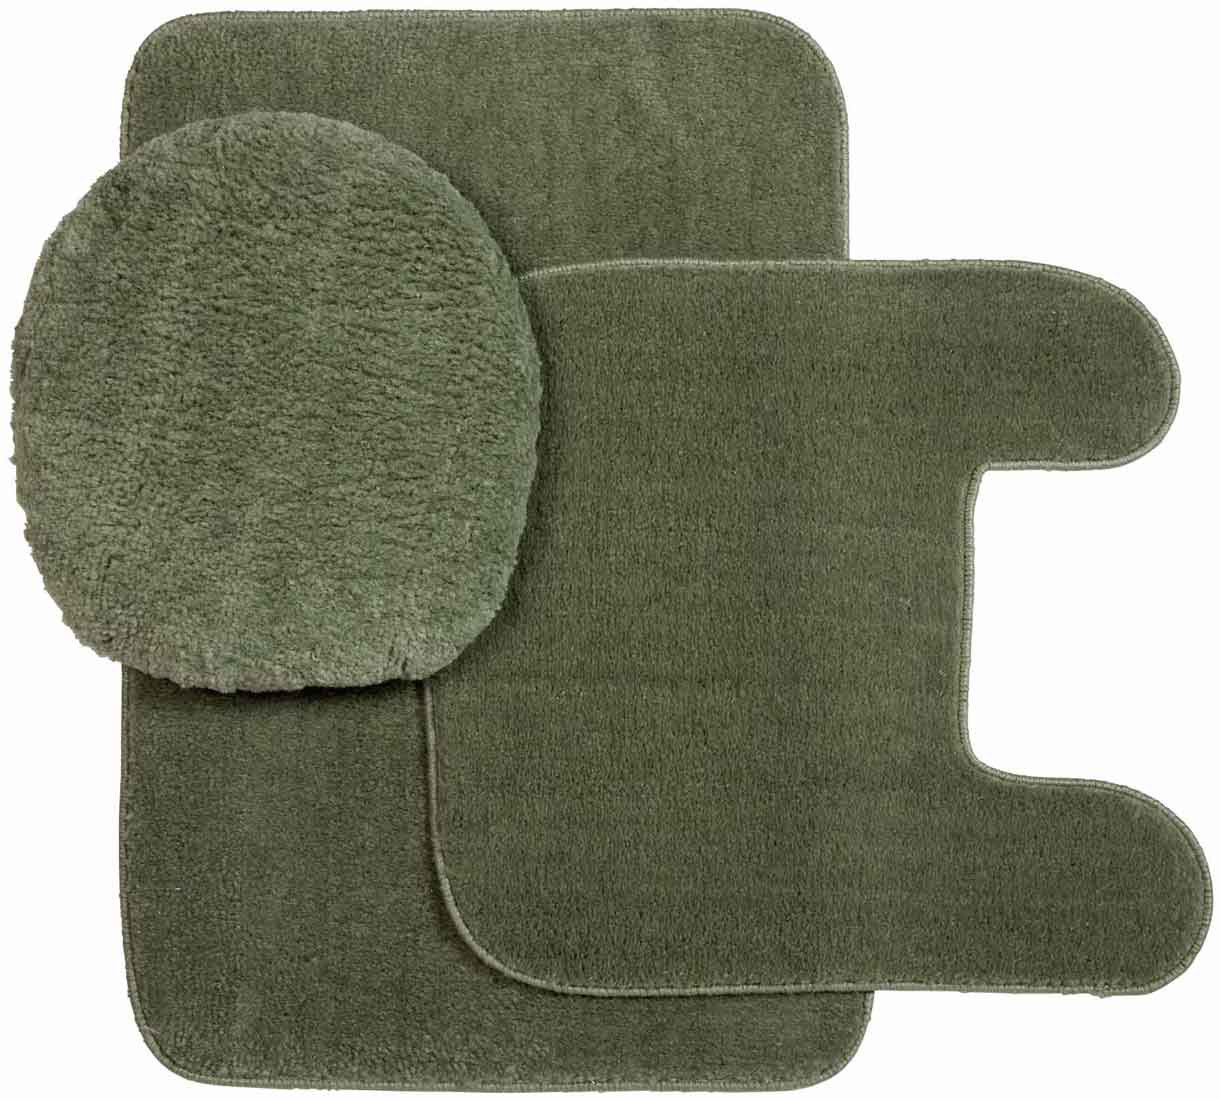 Plush Bathroom Rug Sets: Plush Rug And Lid 3 Pc Bath Set